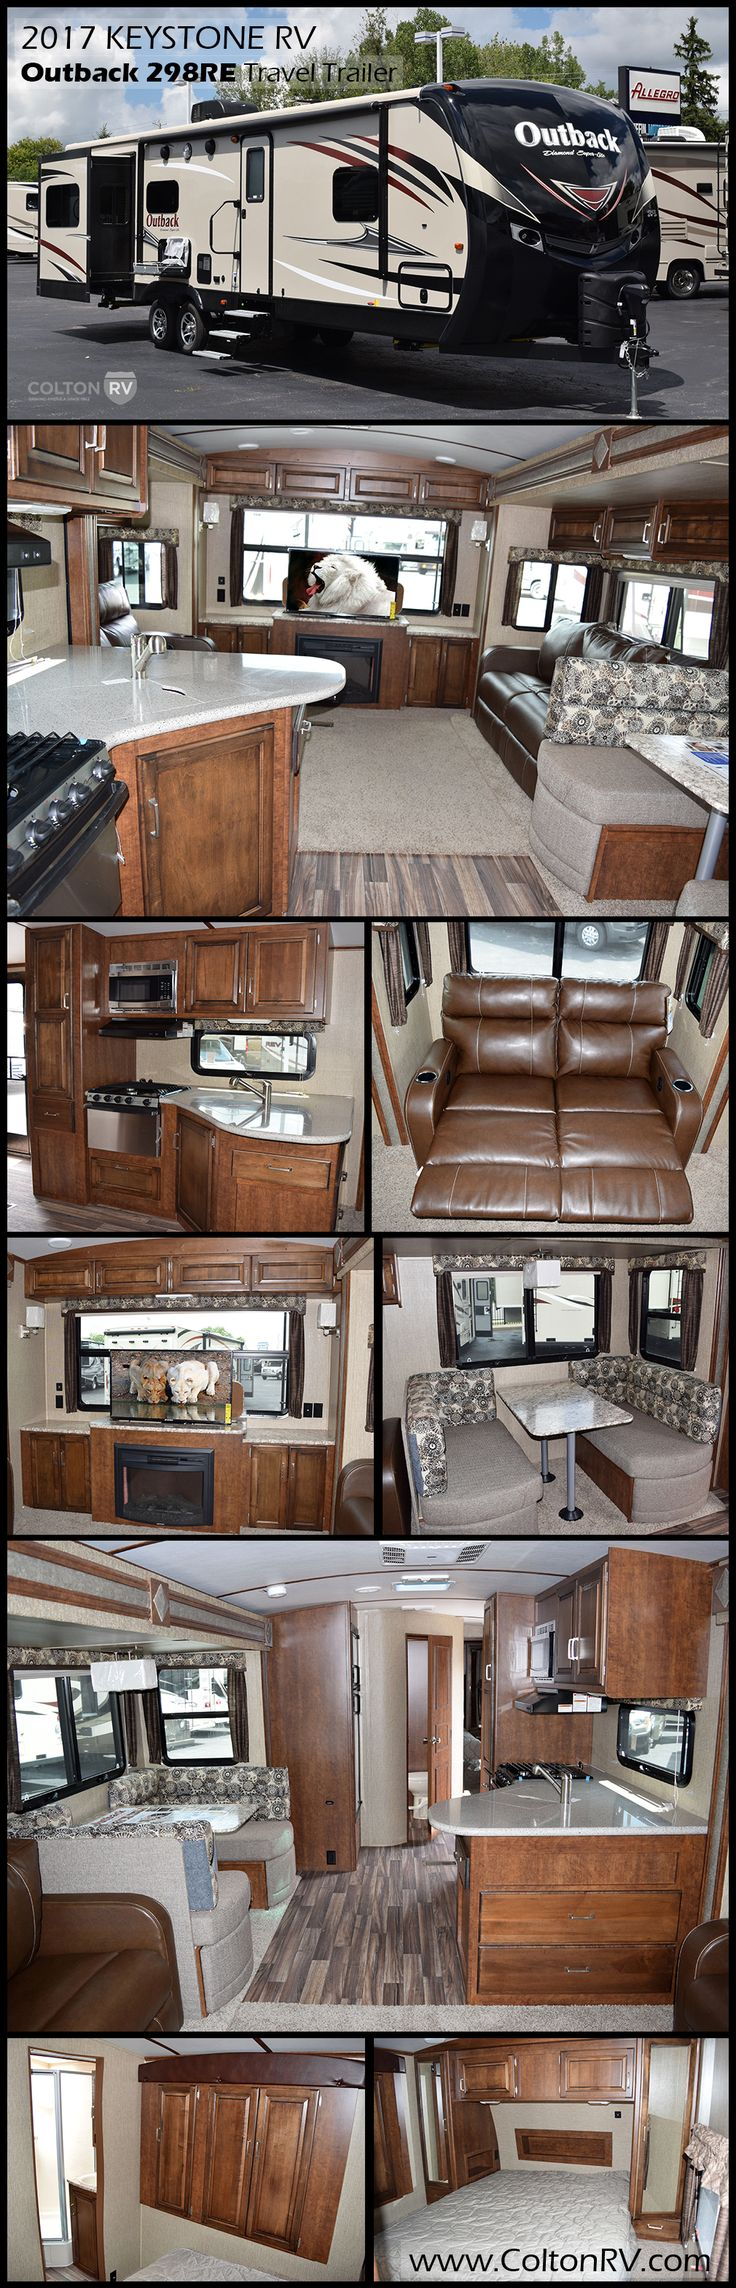 The keystone rv outback diamond super lite 298re travel trailer offers a spacious retreat while you